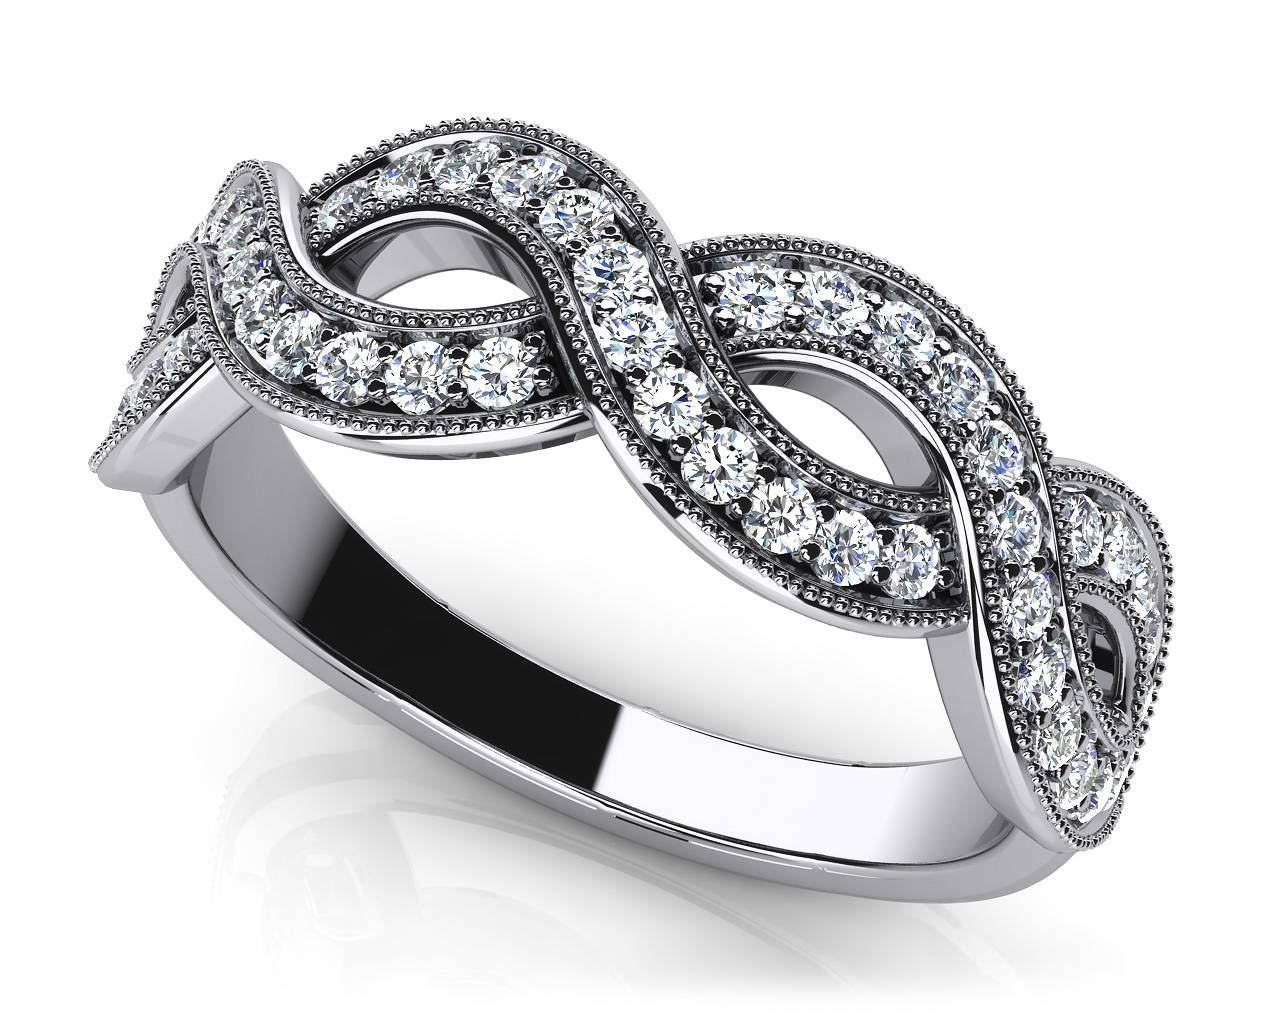 Design Your Own Diamond Anniversary Ring & Eternity Ring Pertaining To Latest Eternity Anniversary Rings (Gallery 18 of 25)